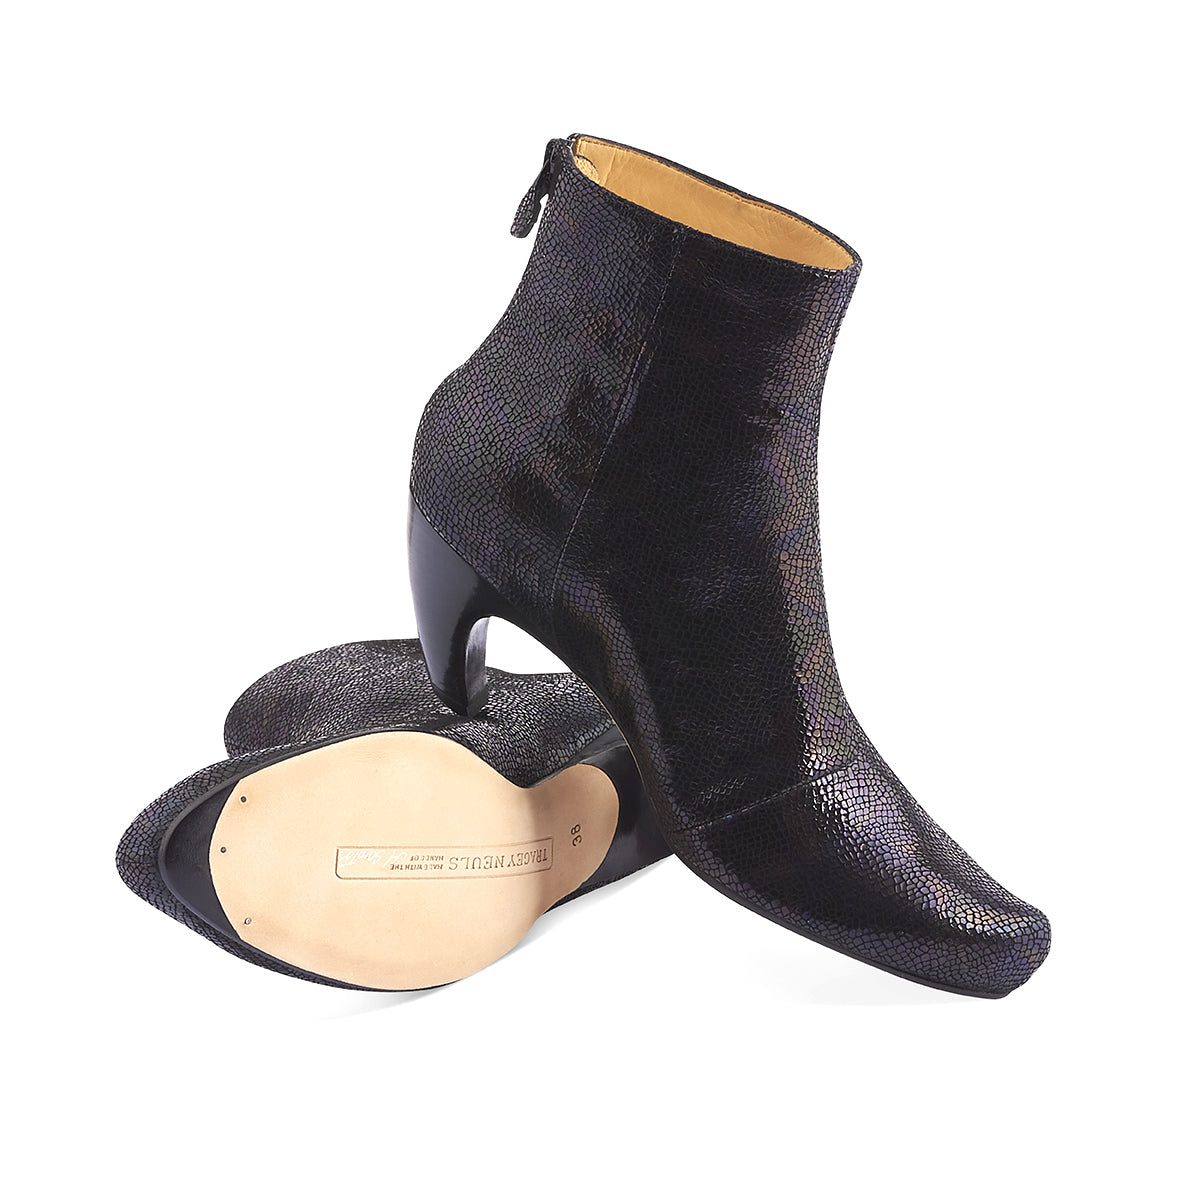 A stunning dress boot from London's Tracey Neuls, King features a sumptuous 'prism' leather upper with a fine faux-snake finish and a rich palette of darks that blend to an iridescent black. The shapely heel creates a beautiful line that flatters the leg and the slim leather sole is signed by the artisan.